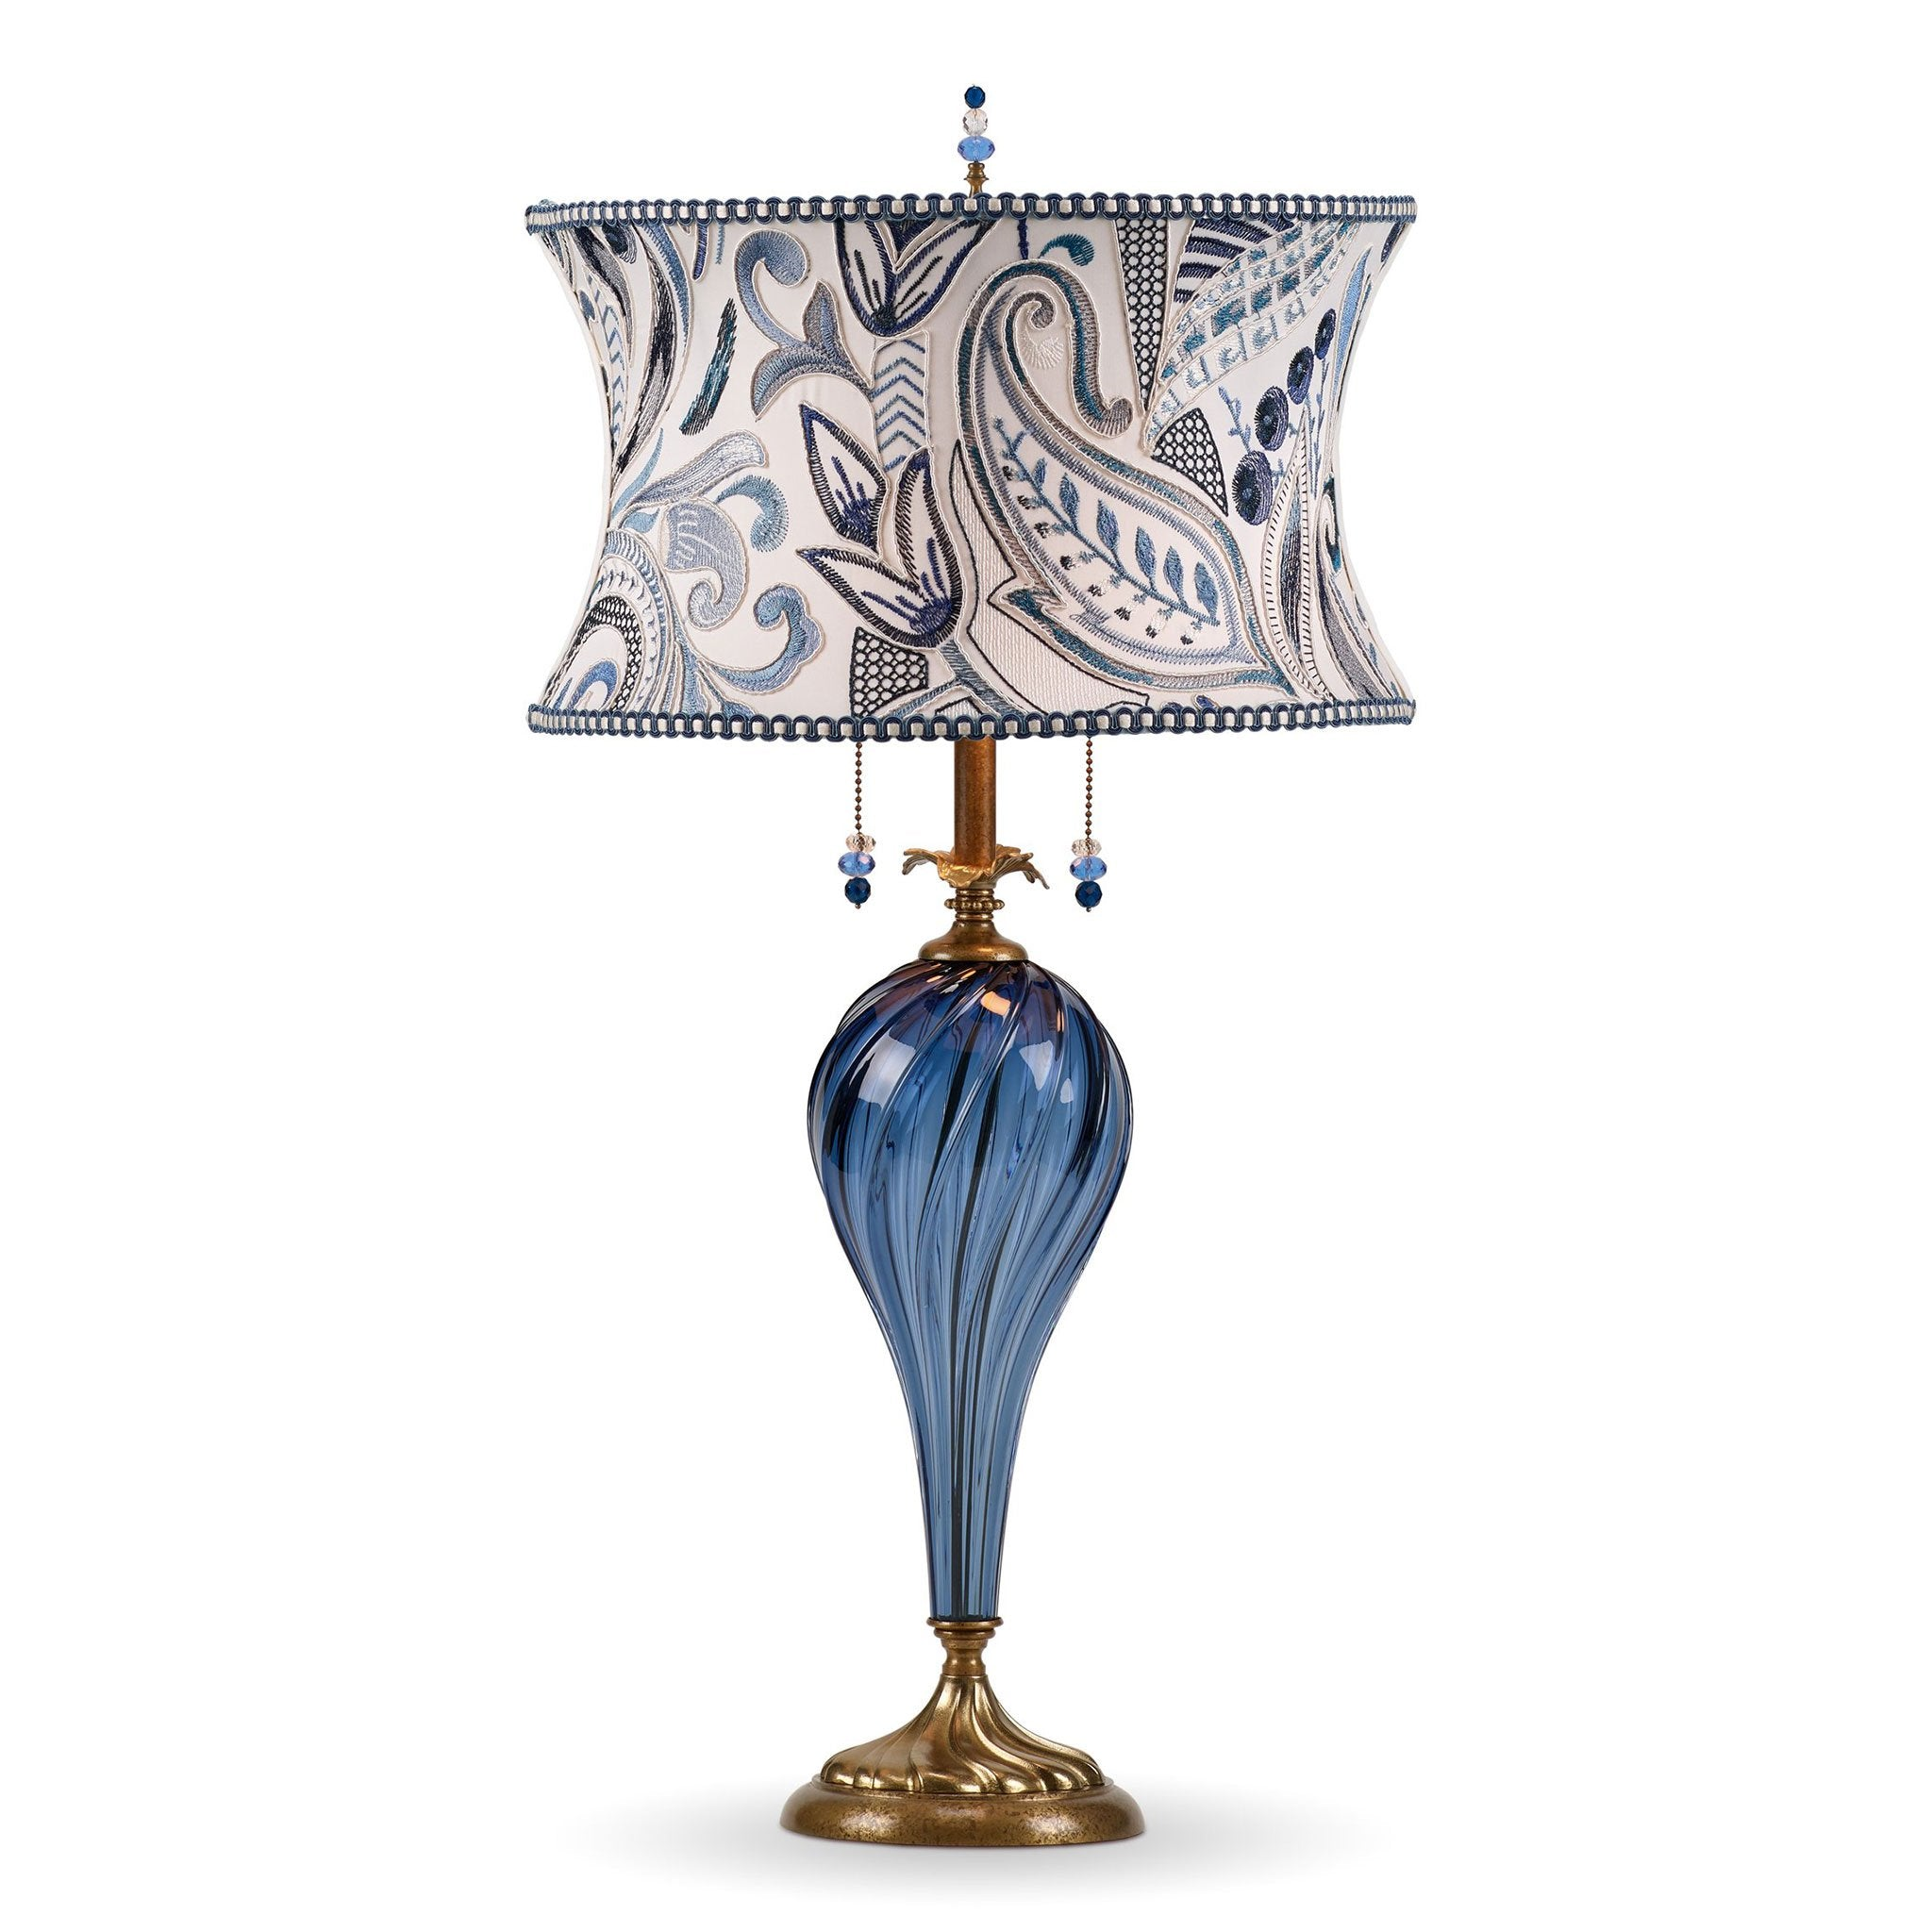 Picture of: Kinzig Design Madison Table Lamp Colors Blue Blown Glass Base With Blue And White Embroidered Shade Sweetheart Gallery Contemporary Craft Gallery Fine American Craft Art Design Handmade Home Personal Accessories